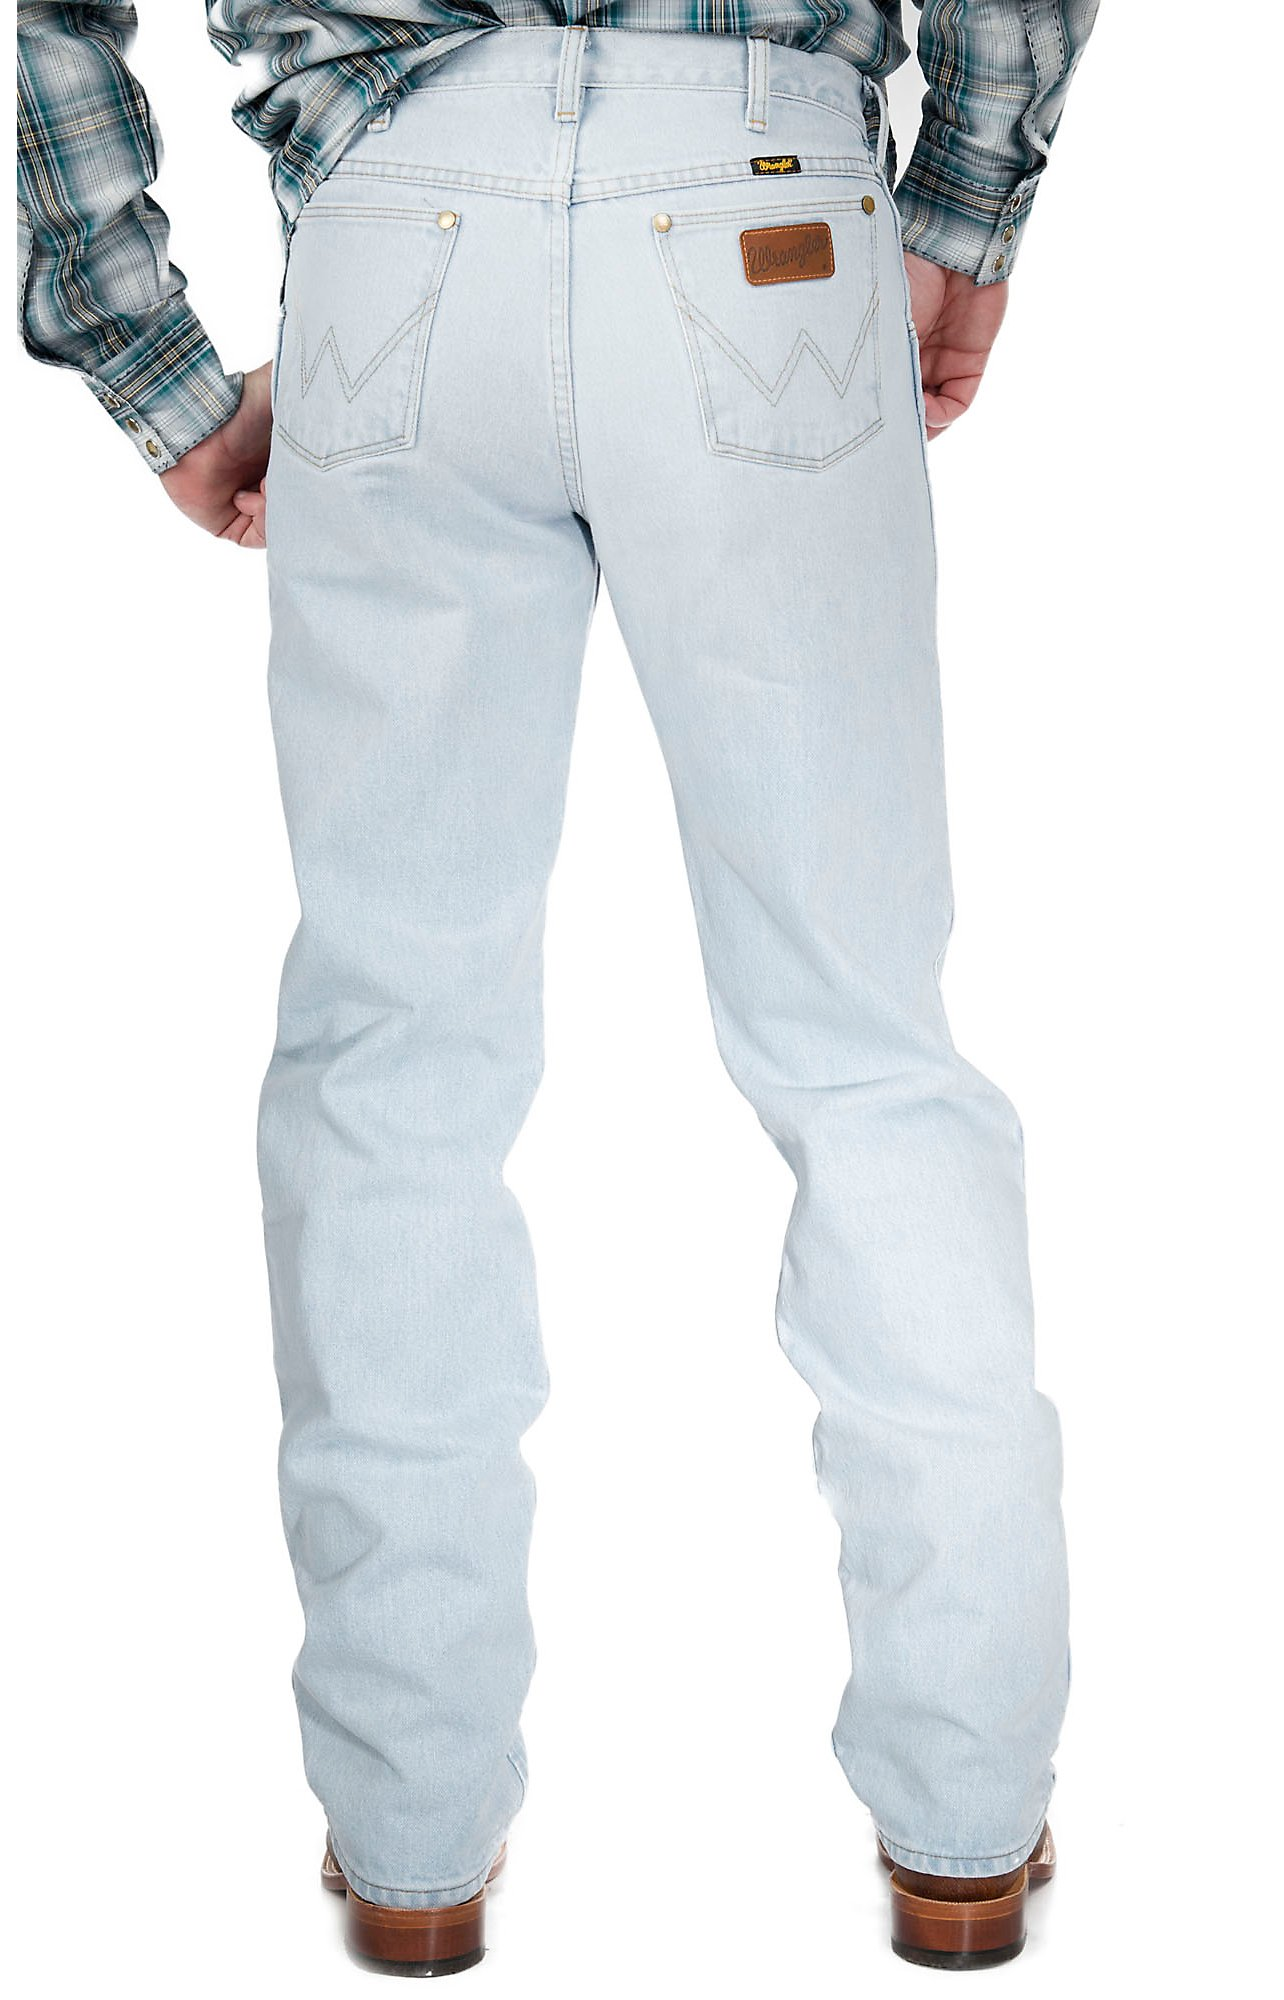 Shop Wrangler Cowboy Cut Jeans for Men | Free Shipping $50  ...